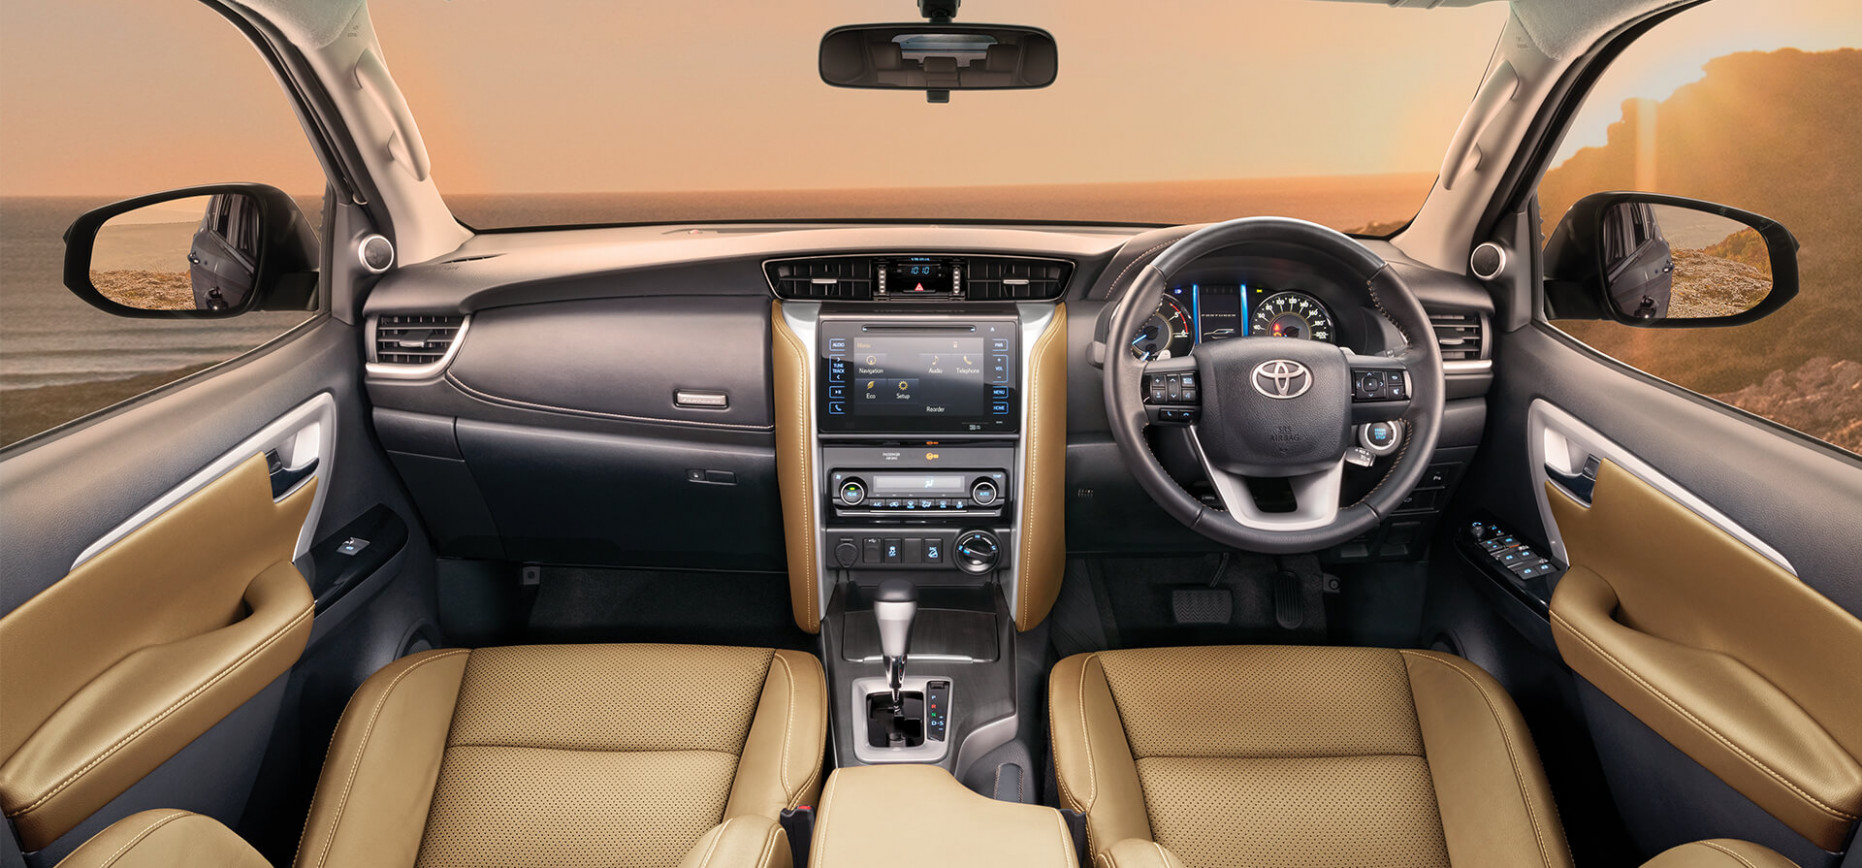 Toyota India | Official Toyota Fortuner site, Fortuner price ...